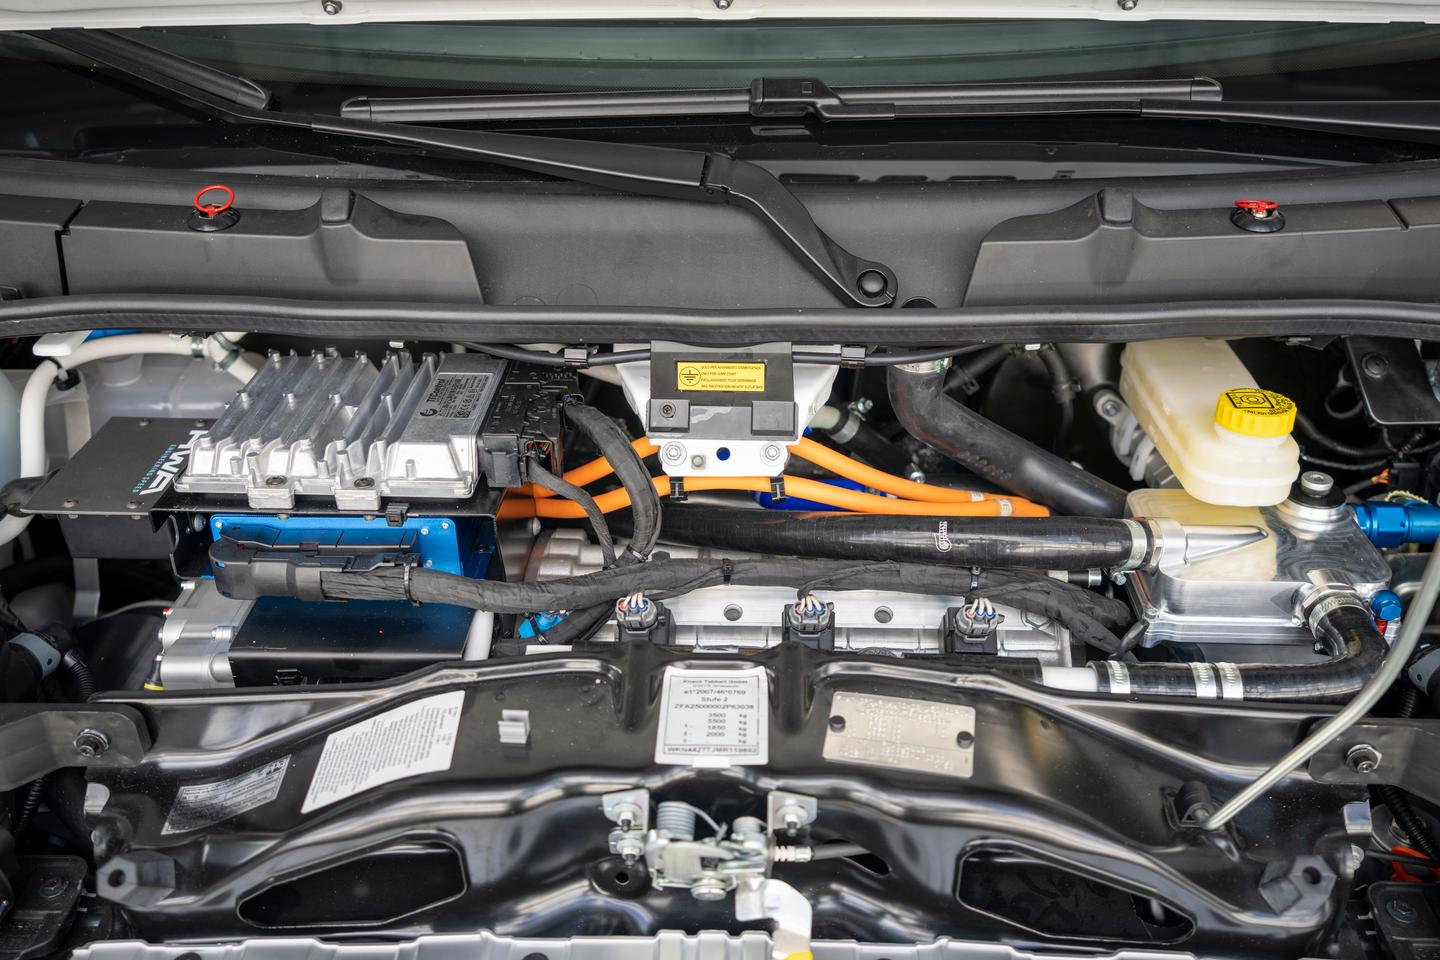 Knaus and HWA replaced the diesel engine and gearbox with an electric drive